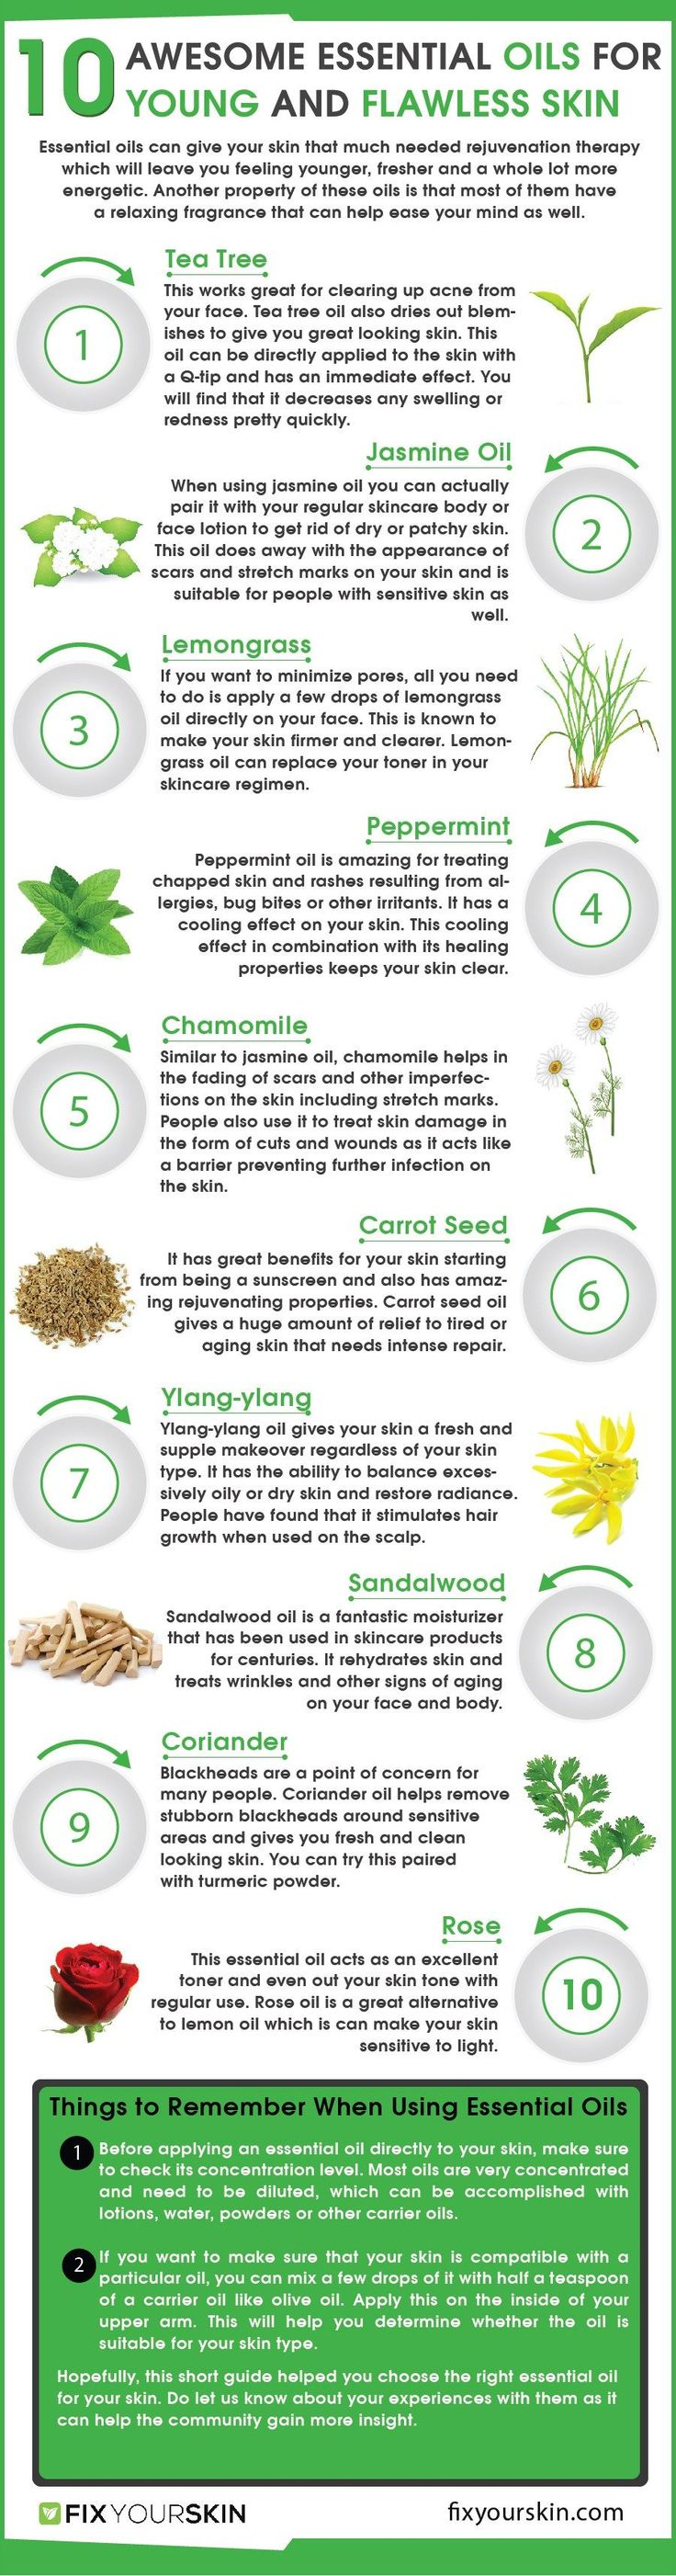 Taking Care Of Your Skin: Essential Oils